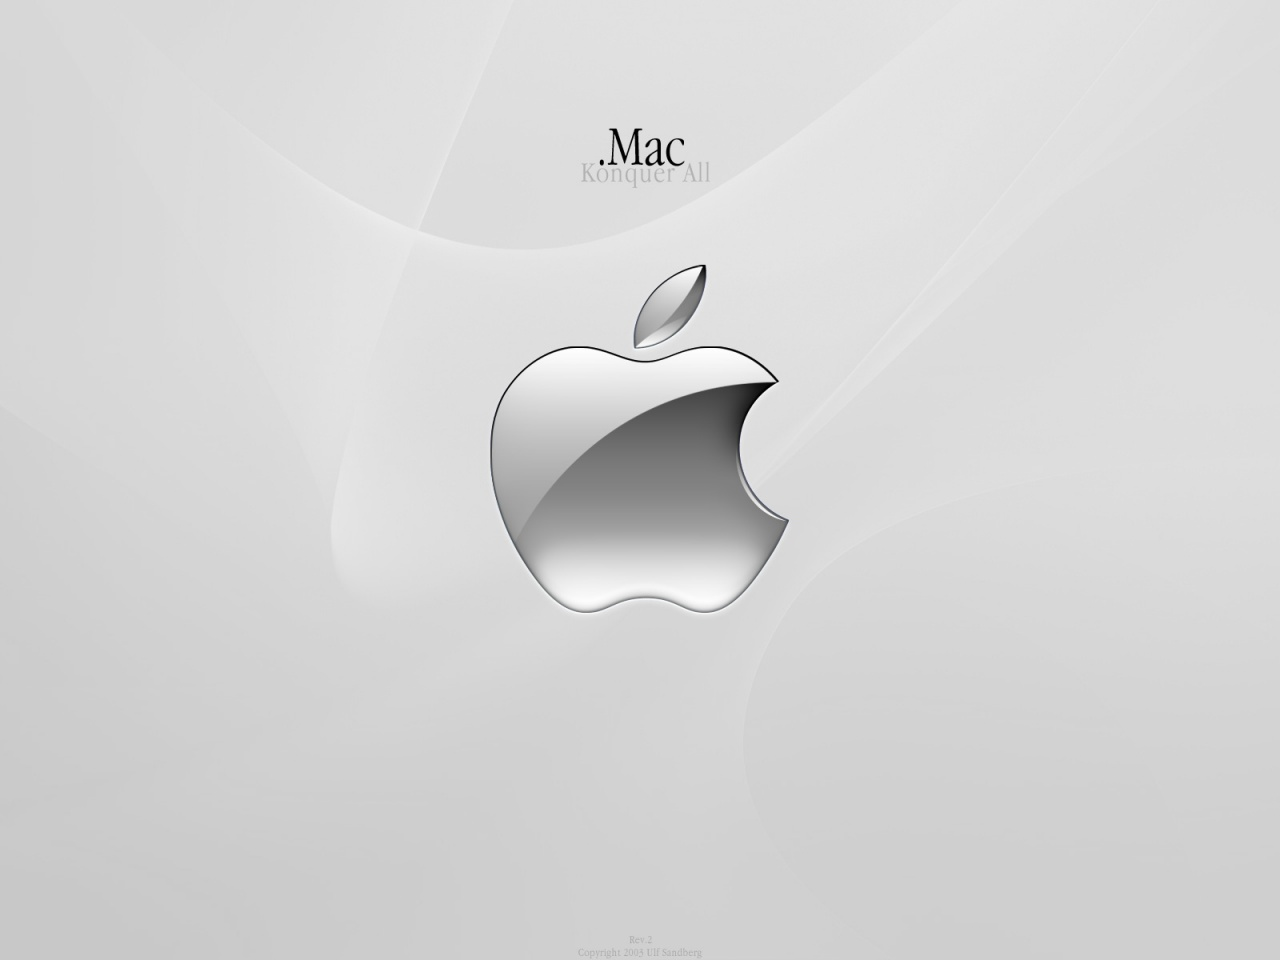 1280x960 grey apple logo desktop pc and mac wallpaper